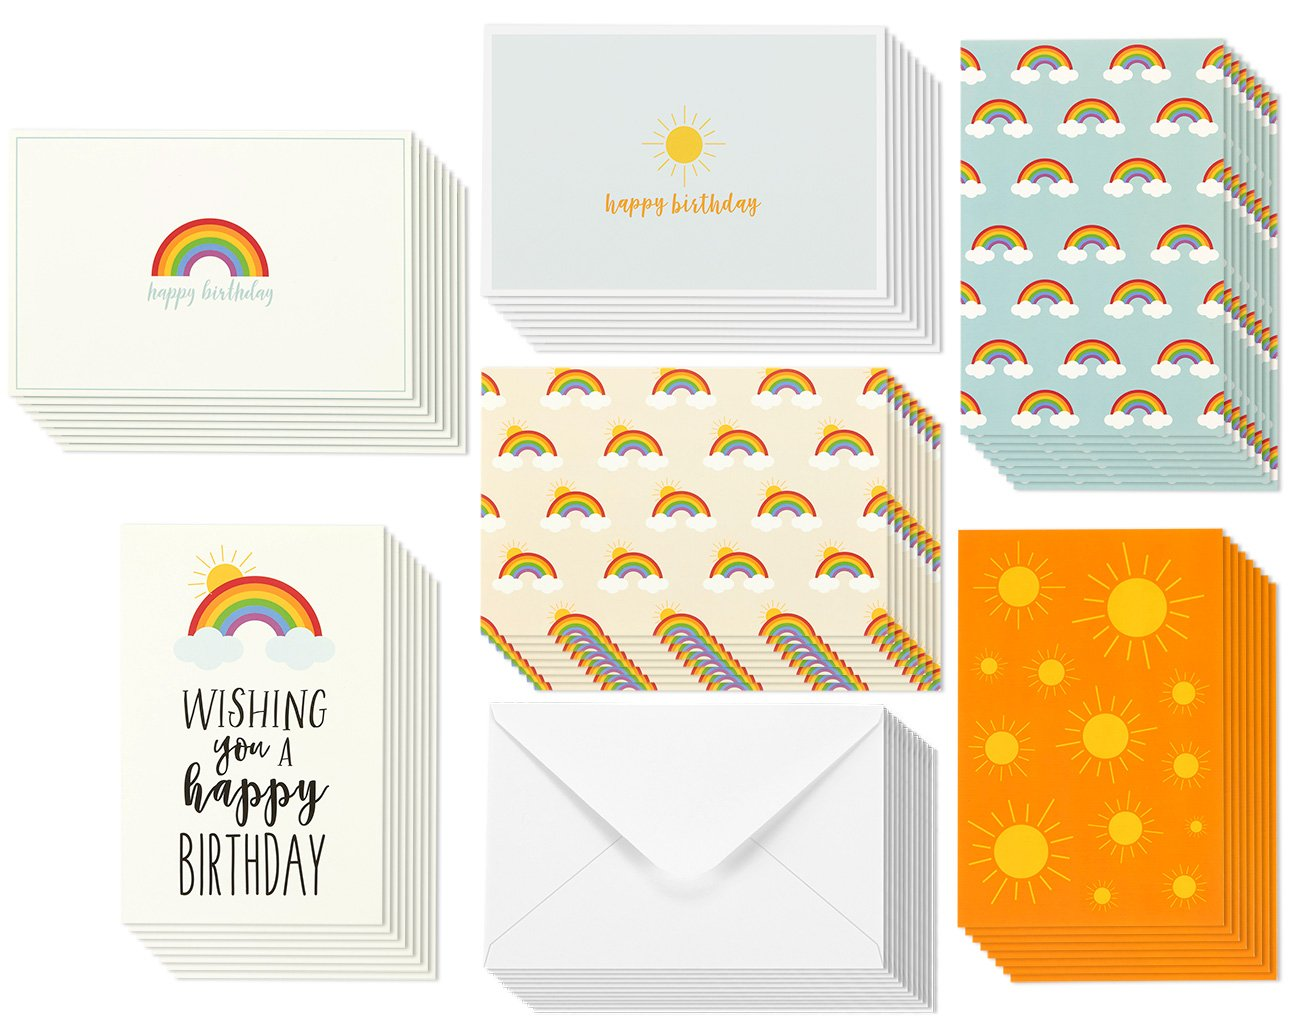 Birthday Card - 48-Pack Birthday Cards Box Set, Happy Birthday Cards – Rainbow and Sun Designs Birthday Card Bulk, Envelopes Included, 4 x 6 inches